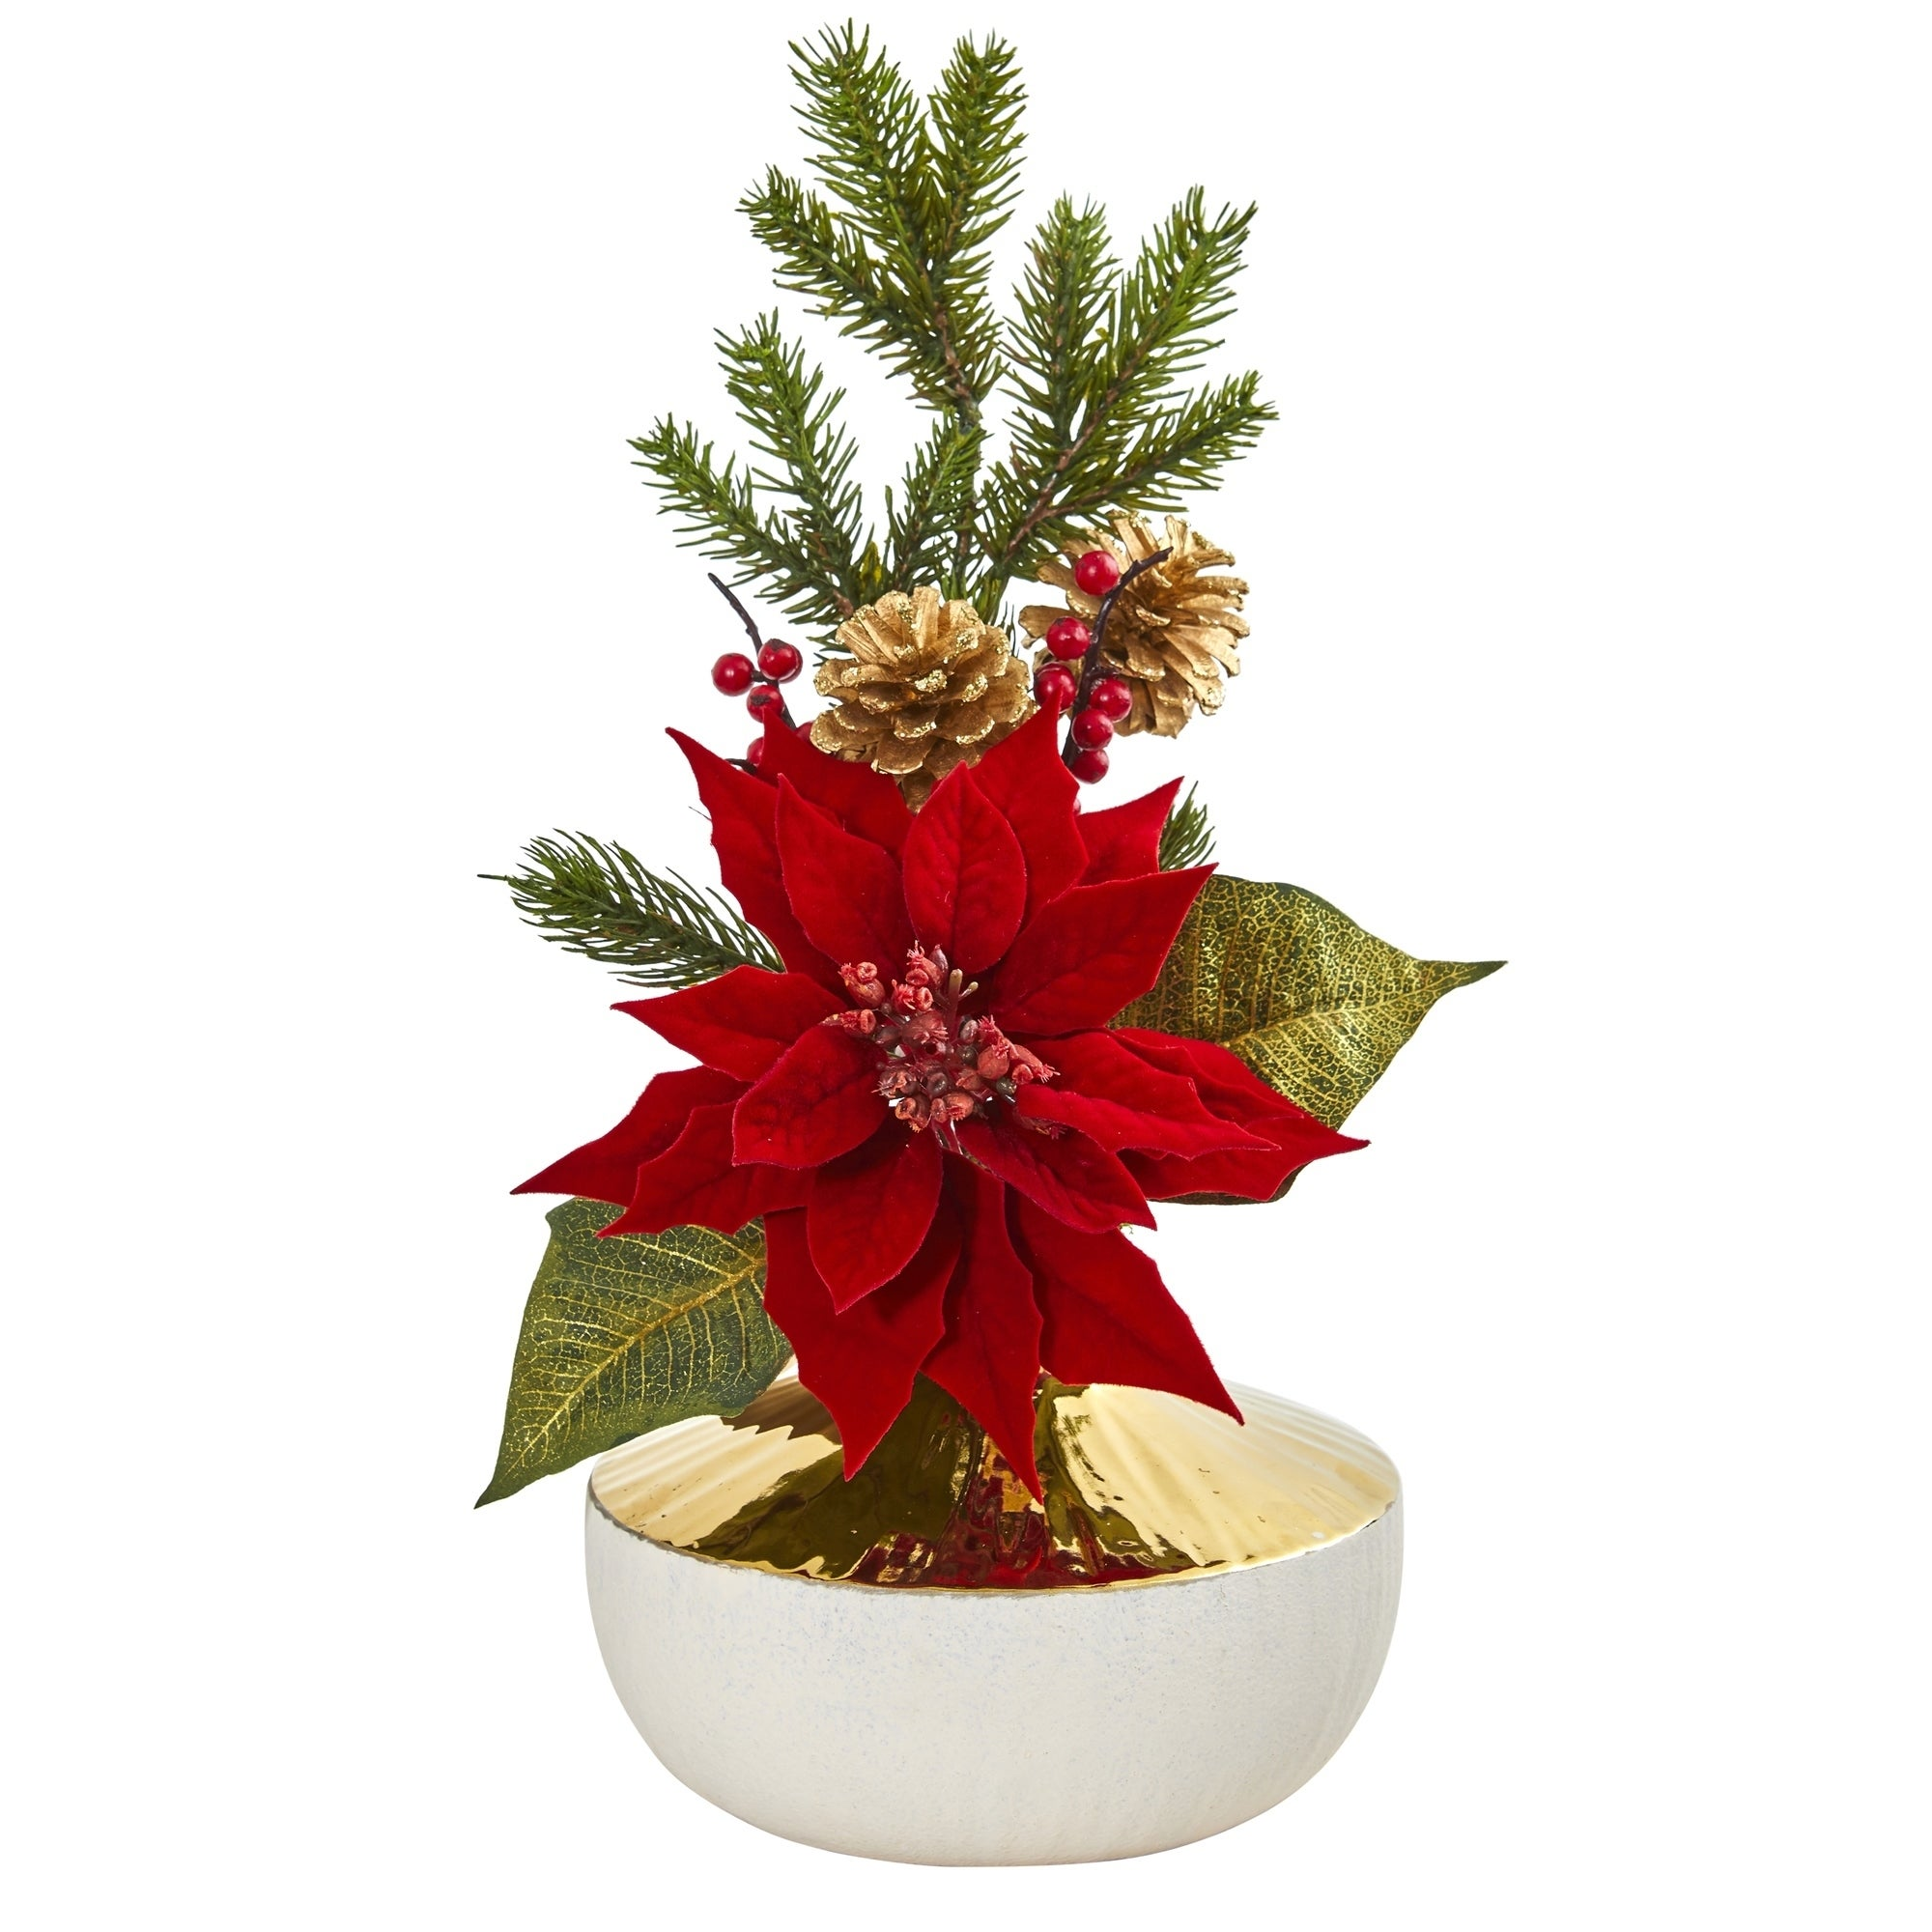 Poinsettia Artificial Arrangement in Decorative Vase